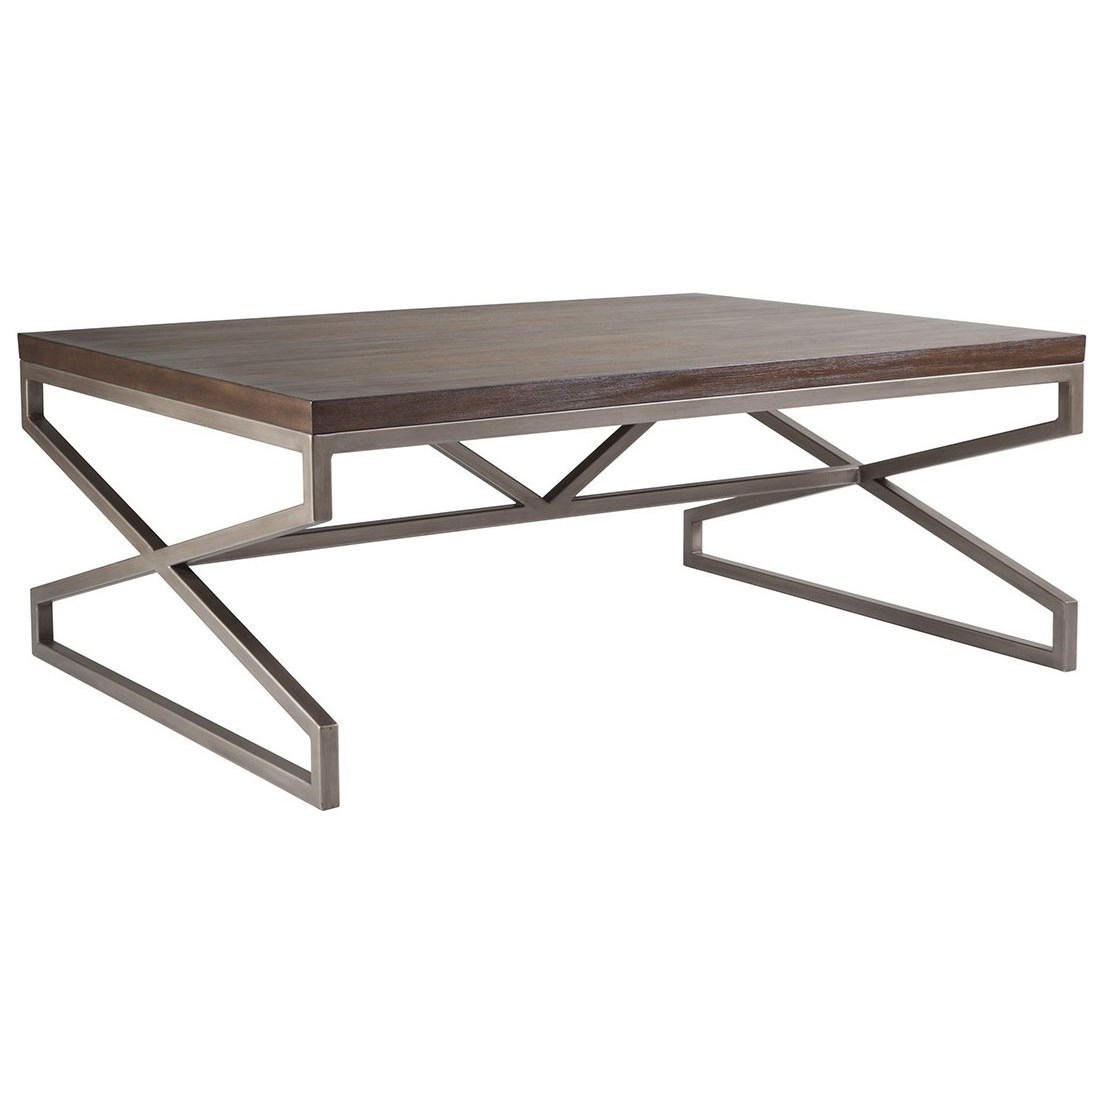 Cohesion Edict Rectangular Cocktail Table by Artistica at Alison Craig Home Furnishings